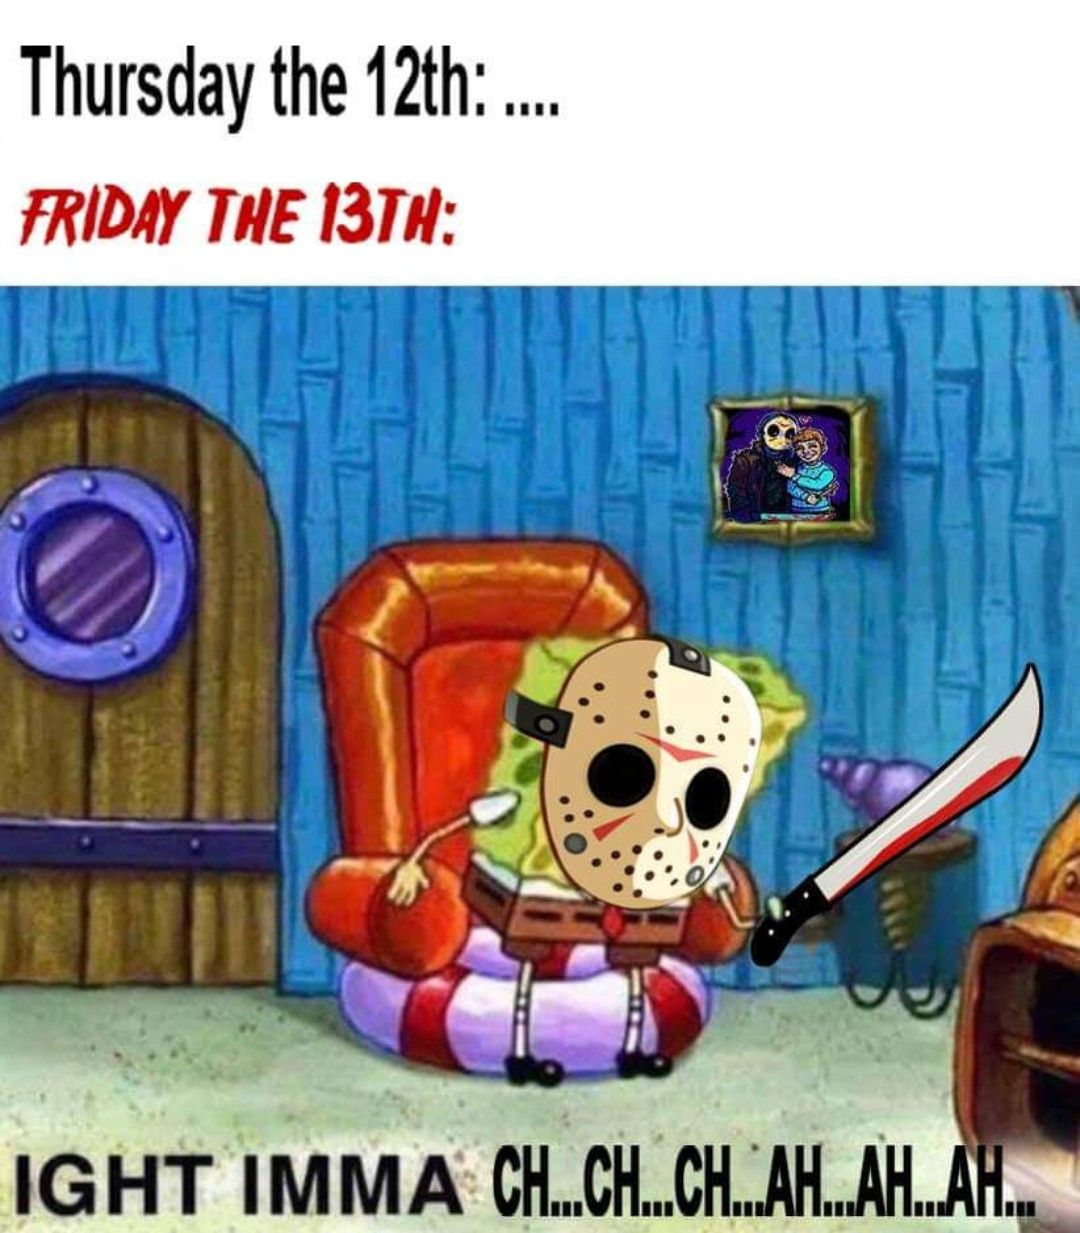 Pin by Lyndsey Shea on Just for Giggles Funny spongebob